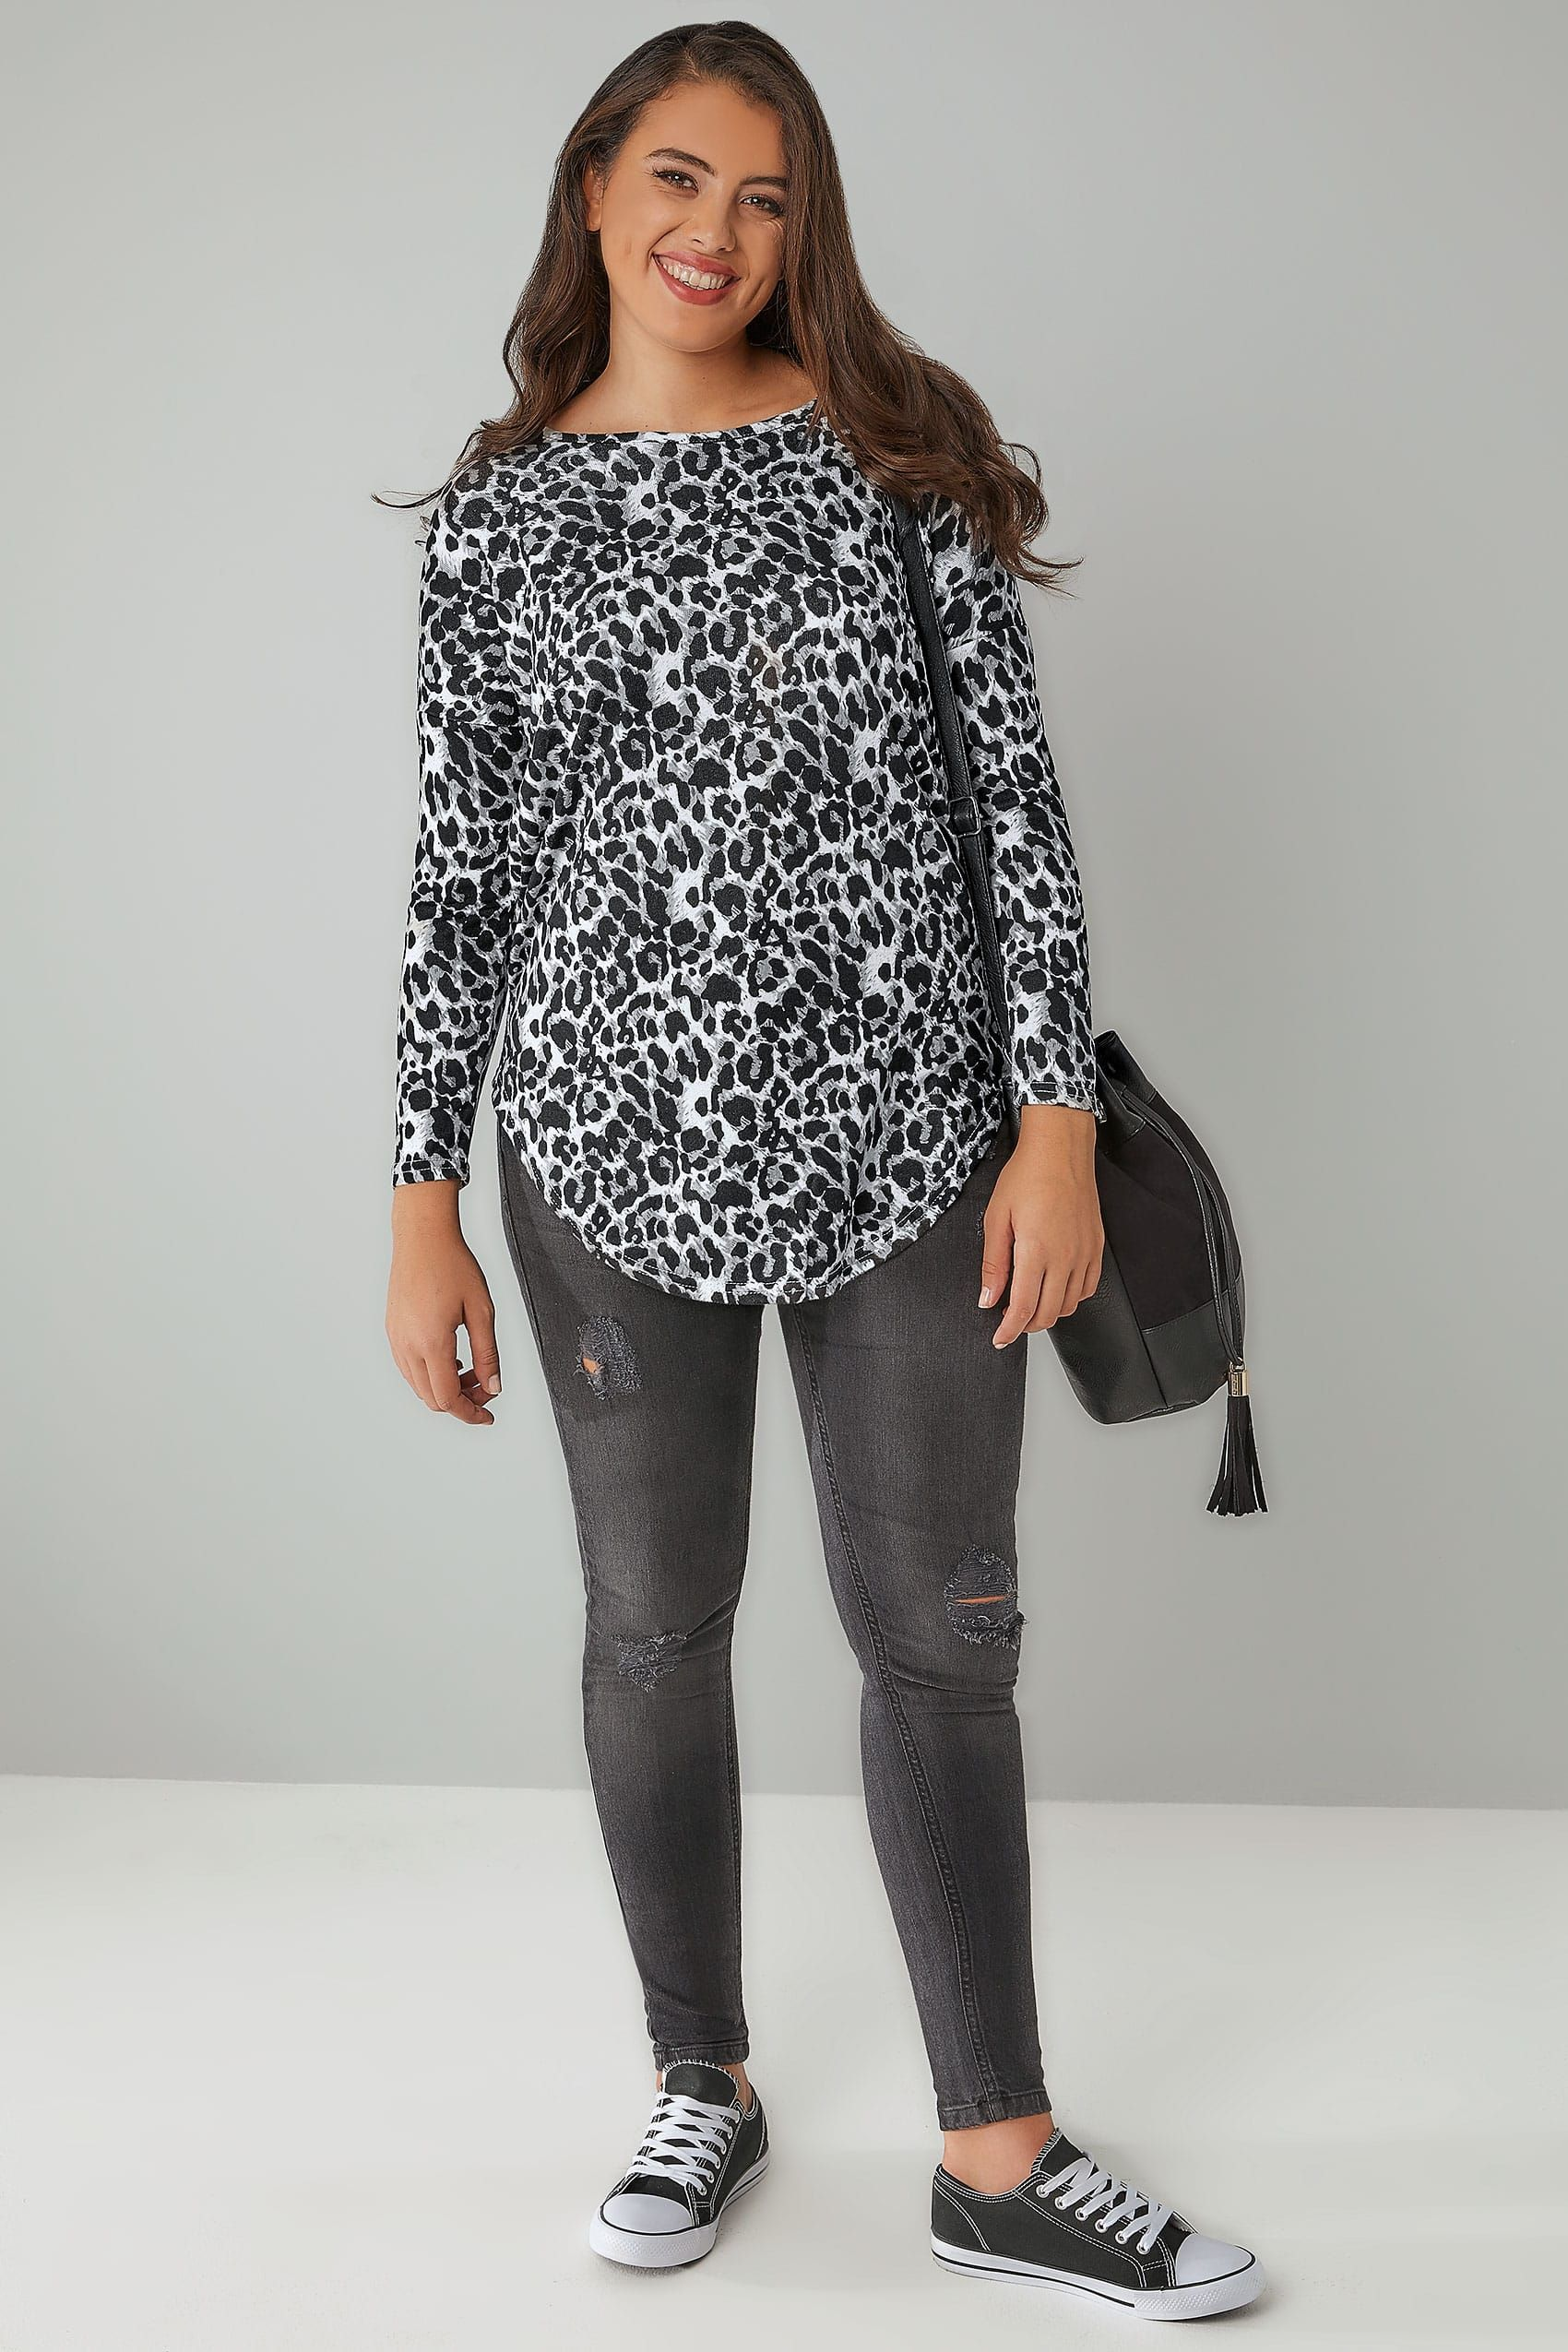 80a54826e28b Grey Animal Print Brushed Fine Knit Top With a Zip Up Back | Capsule ...